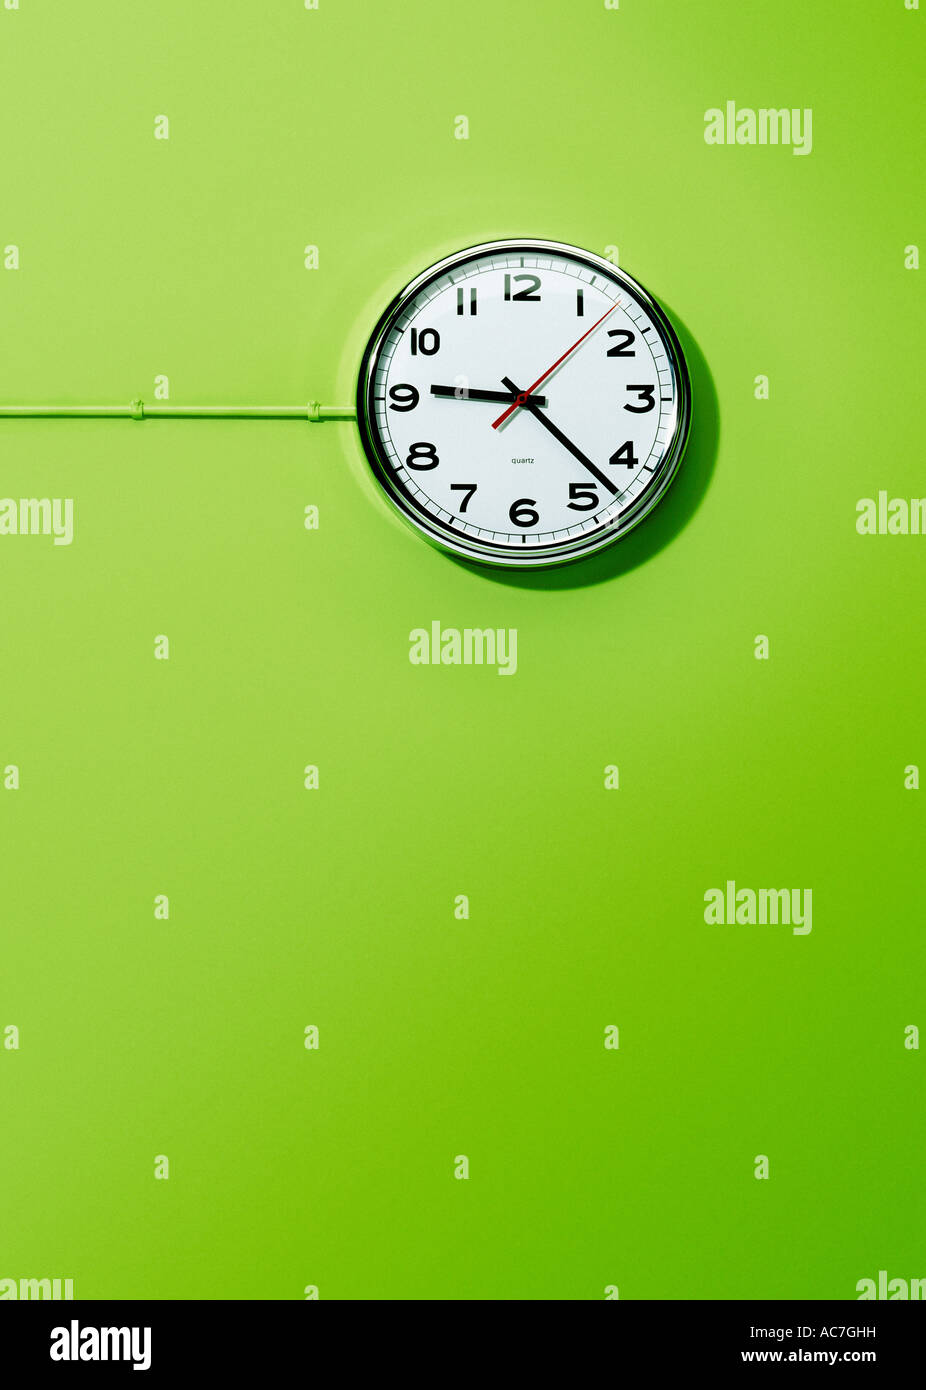 Wall mounted electric office clock against a lime green background - Stock Image